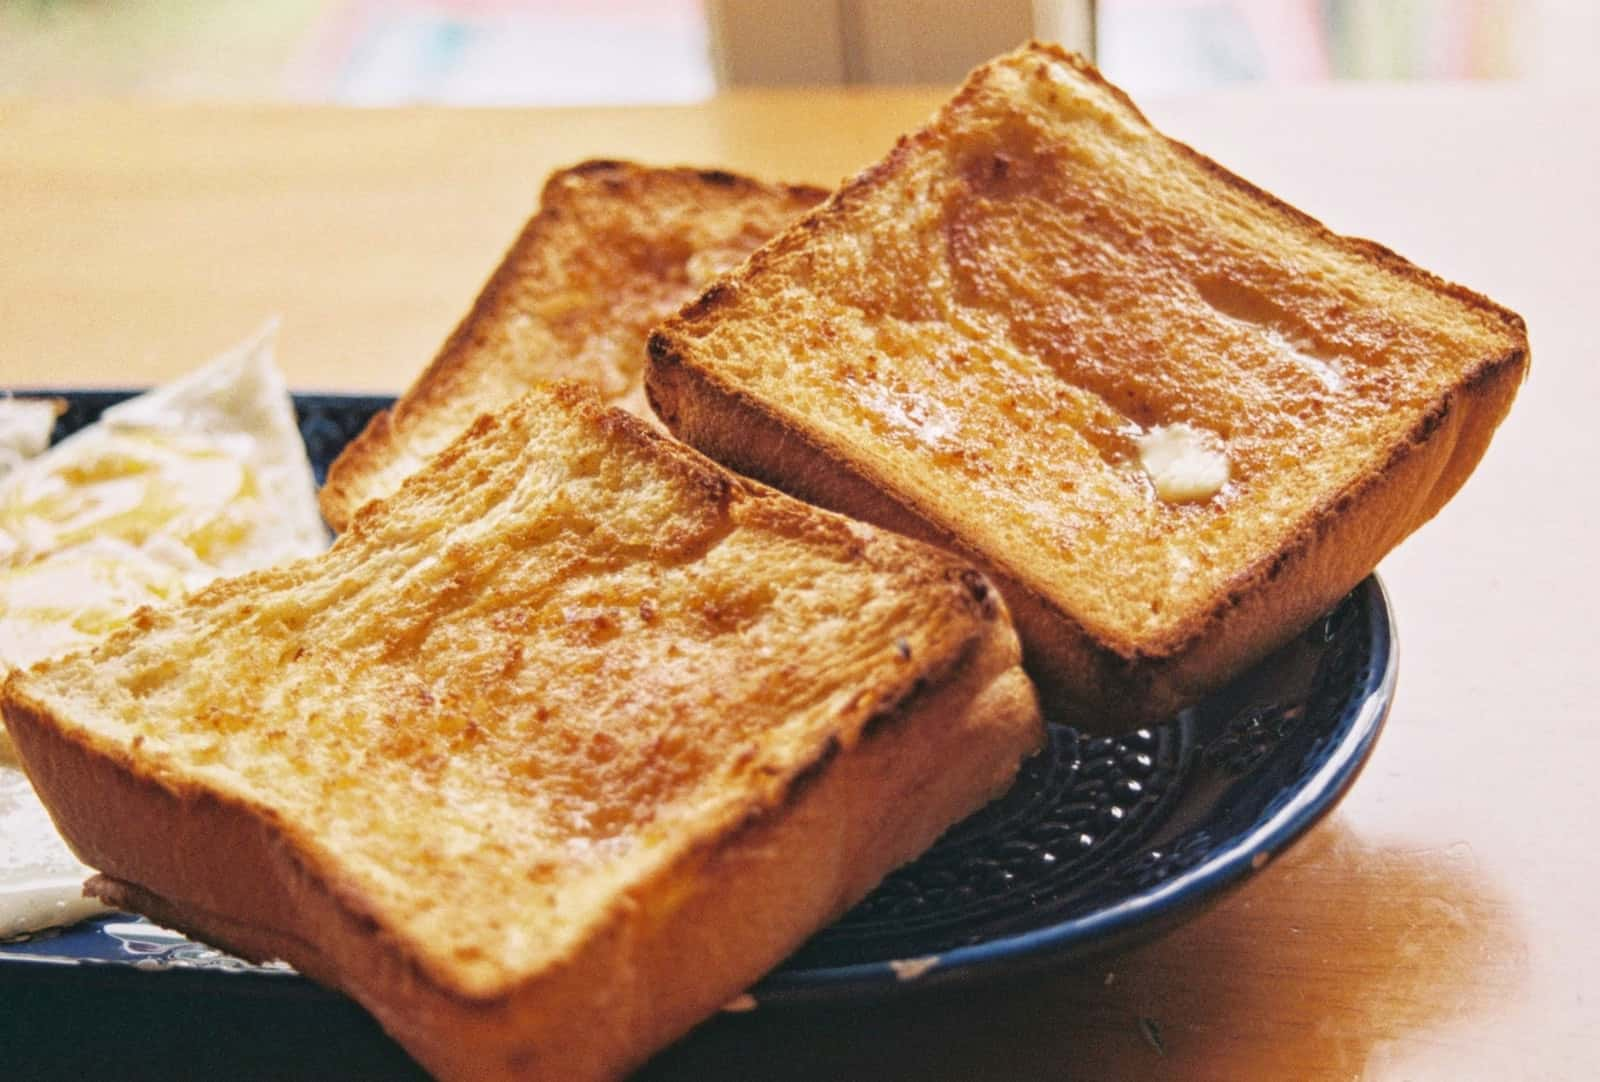 Buttered toasted white bread